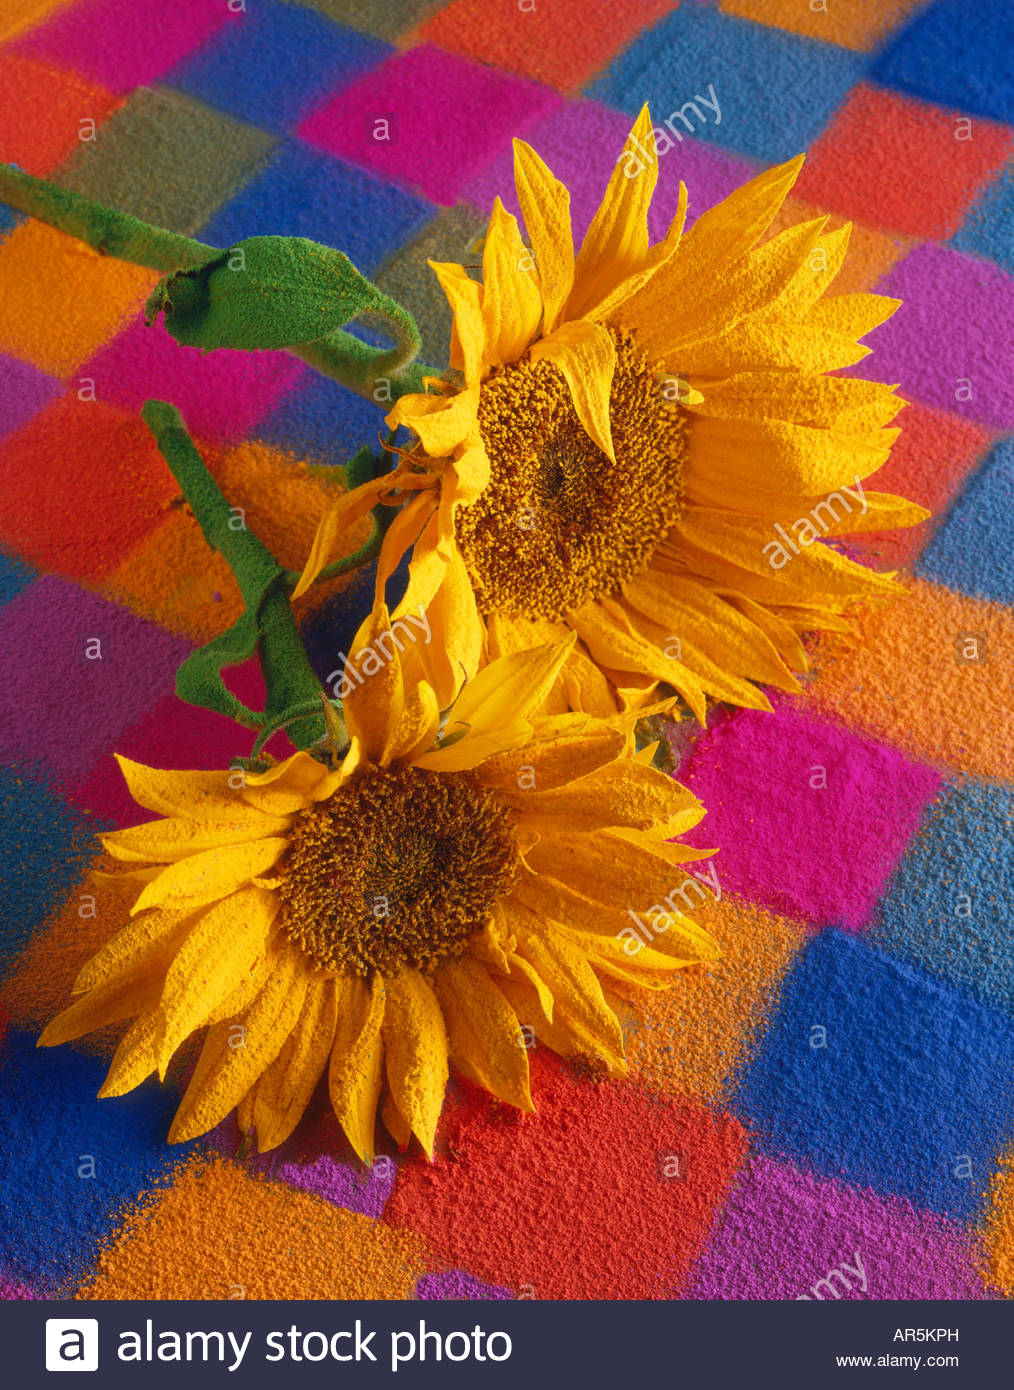 Stylised sunflowers with a textured covering. - Stock Image